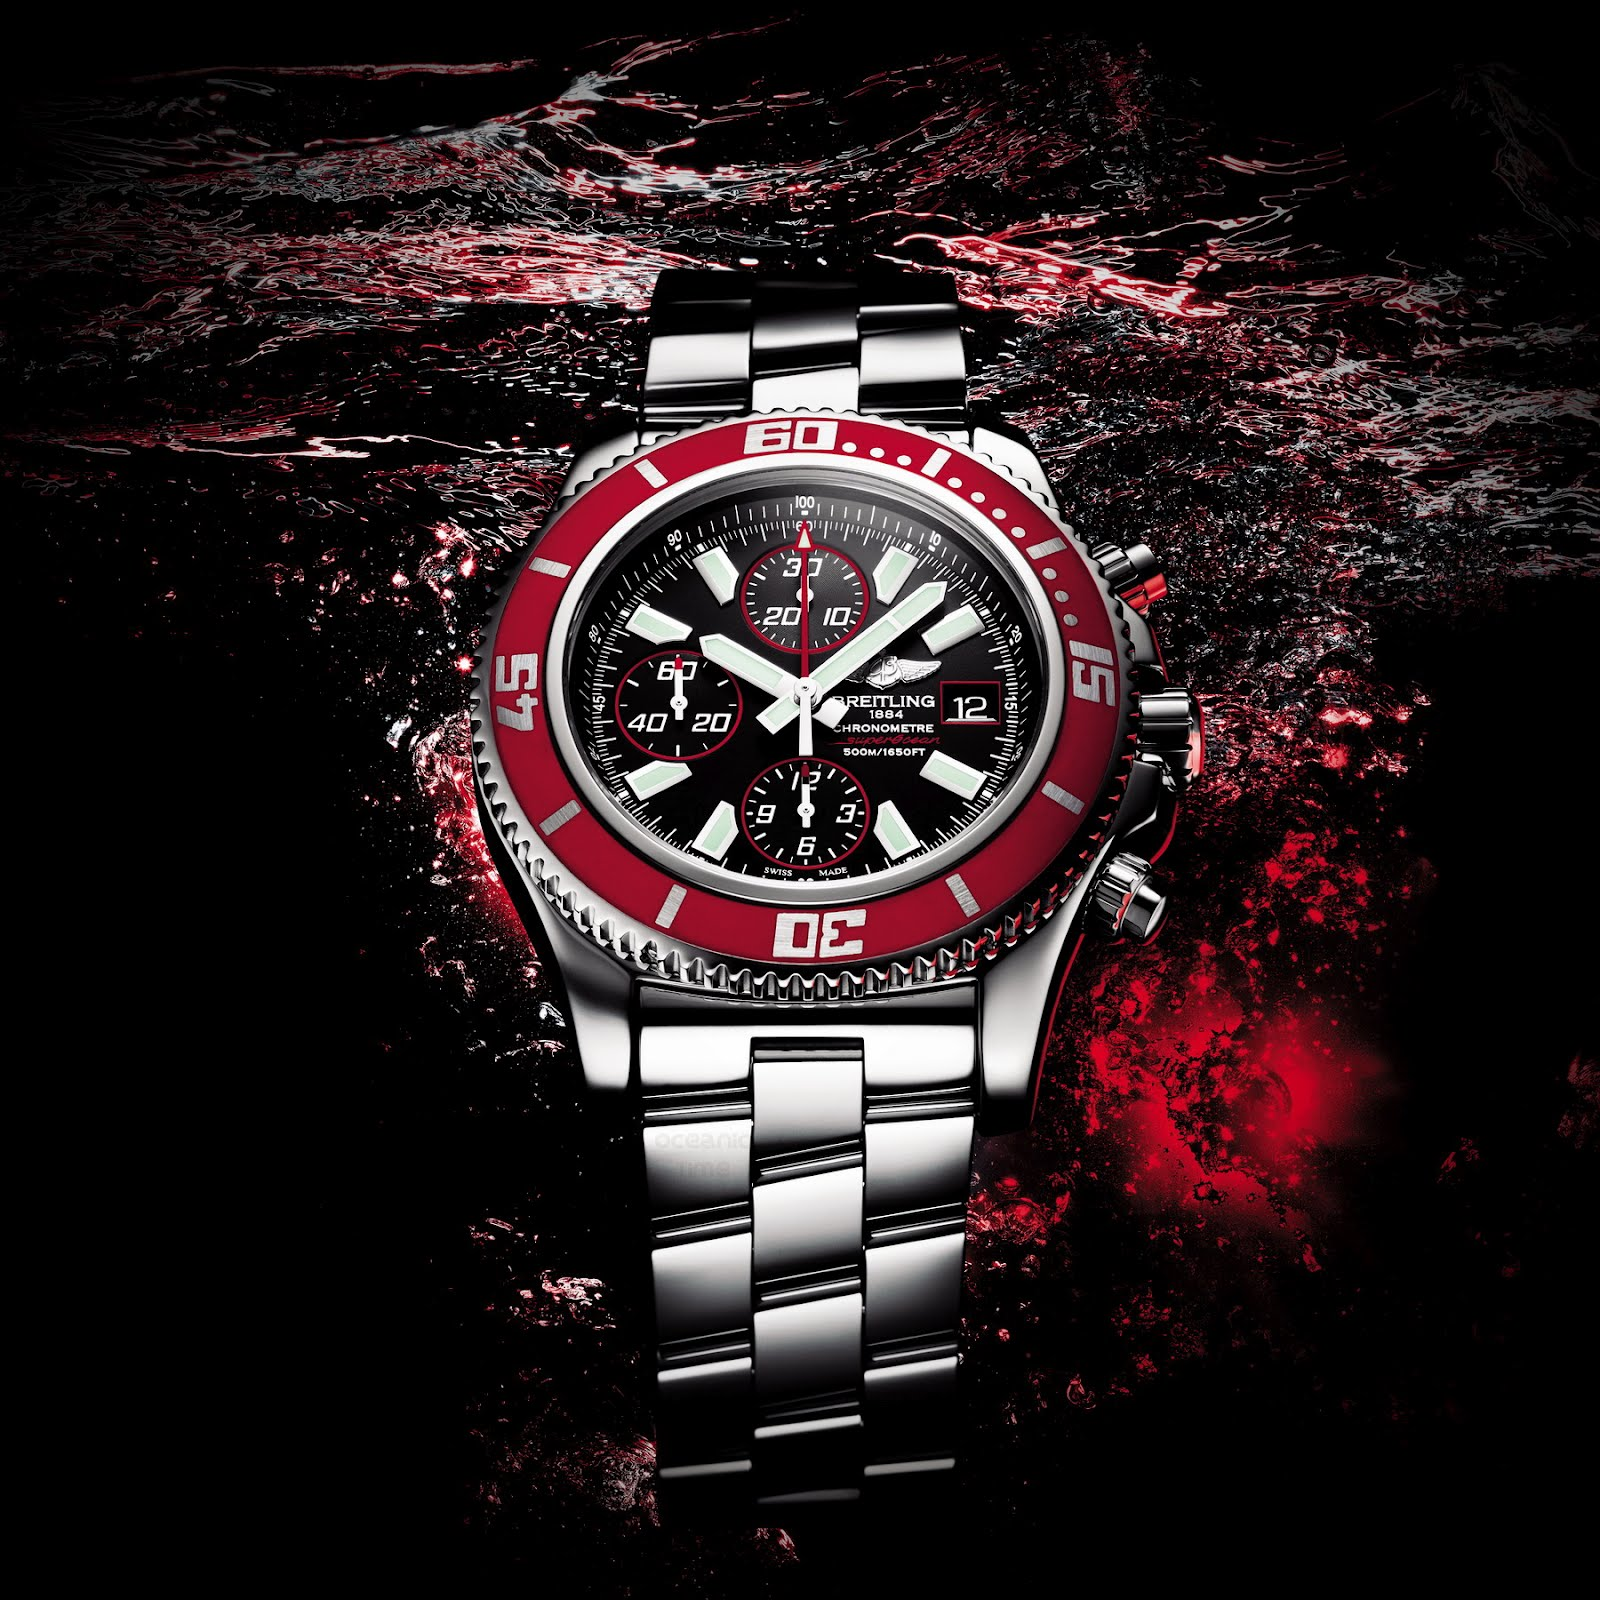 Review The Amazing Breitling Superocean II Replica Watch With Red Rubber